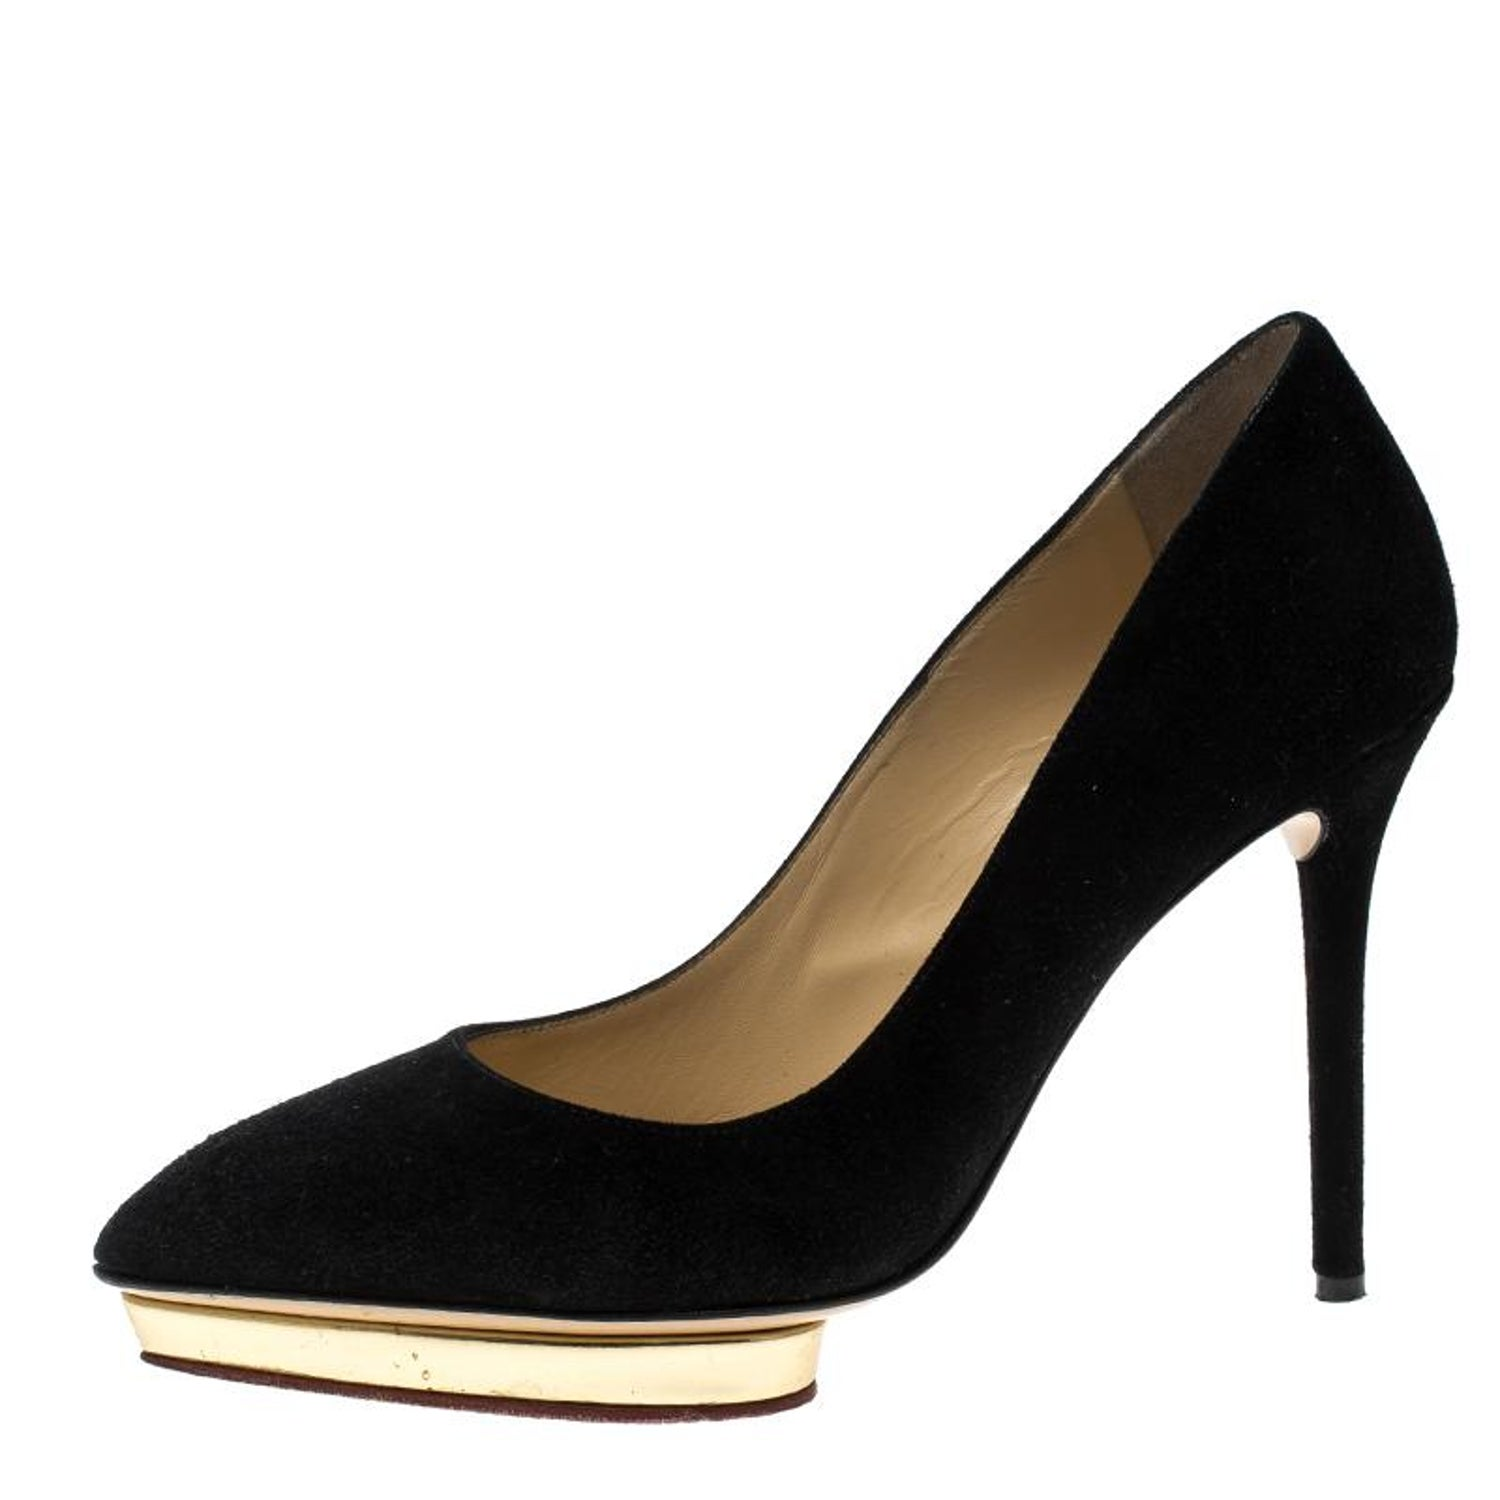 51a0900fc9cf Charlotte Olympia Black Suede Dotty Platform Pumps Size 37 at 1stdibs